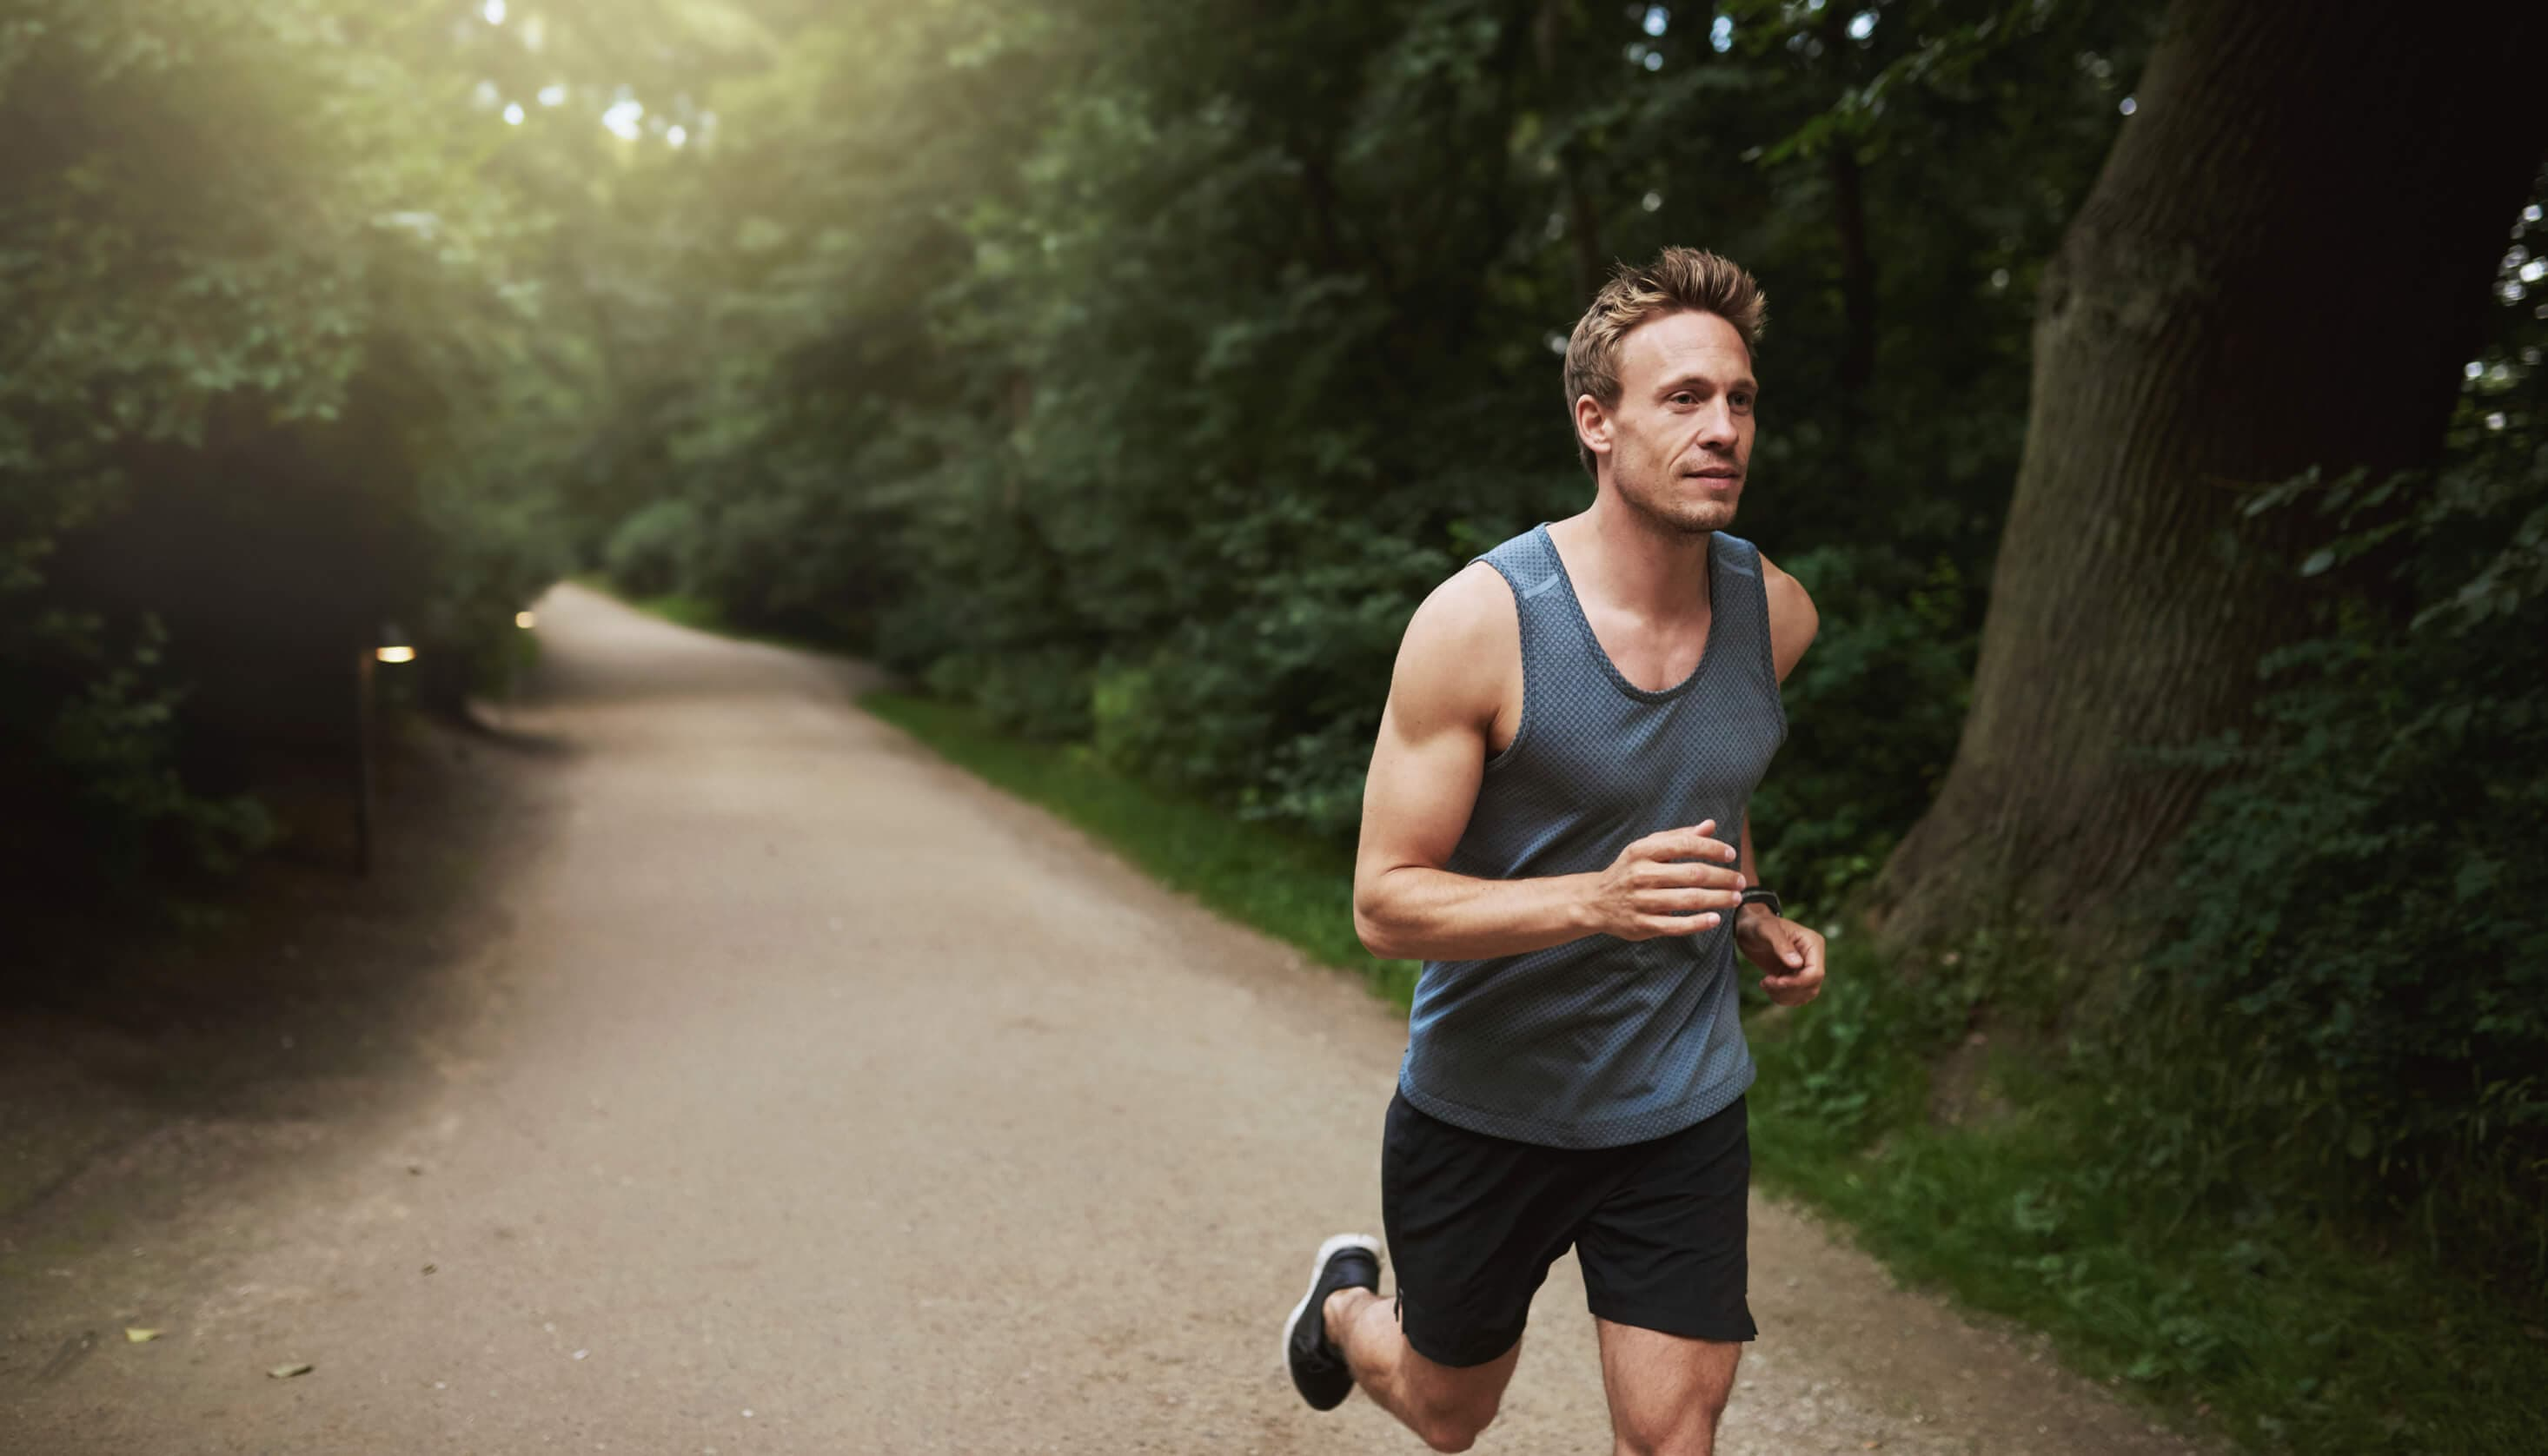 Gym Hairstyles for running